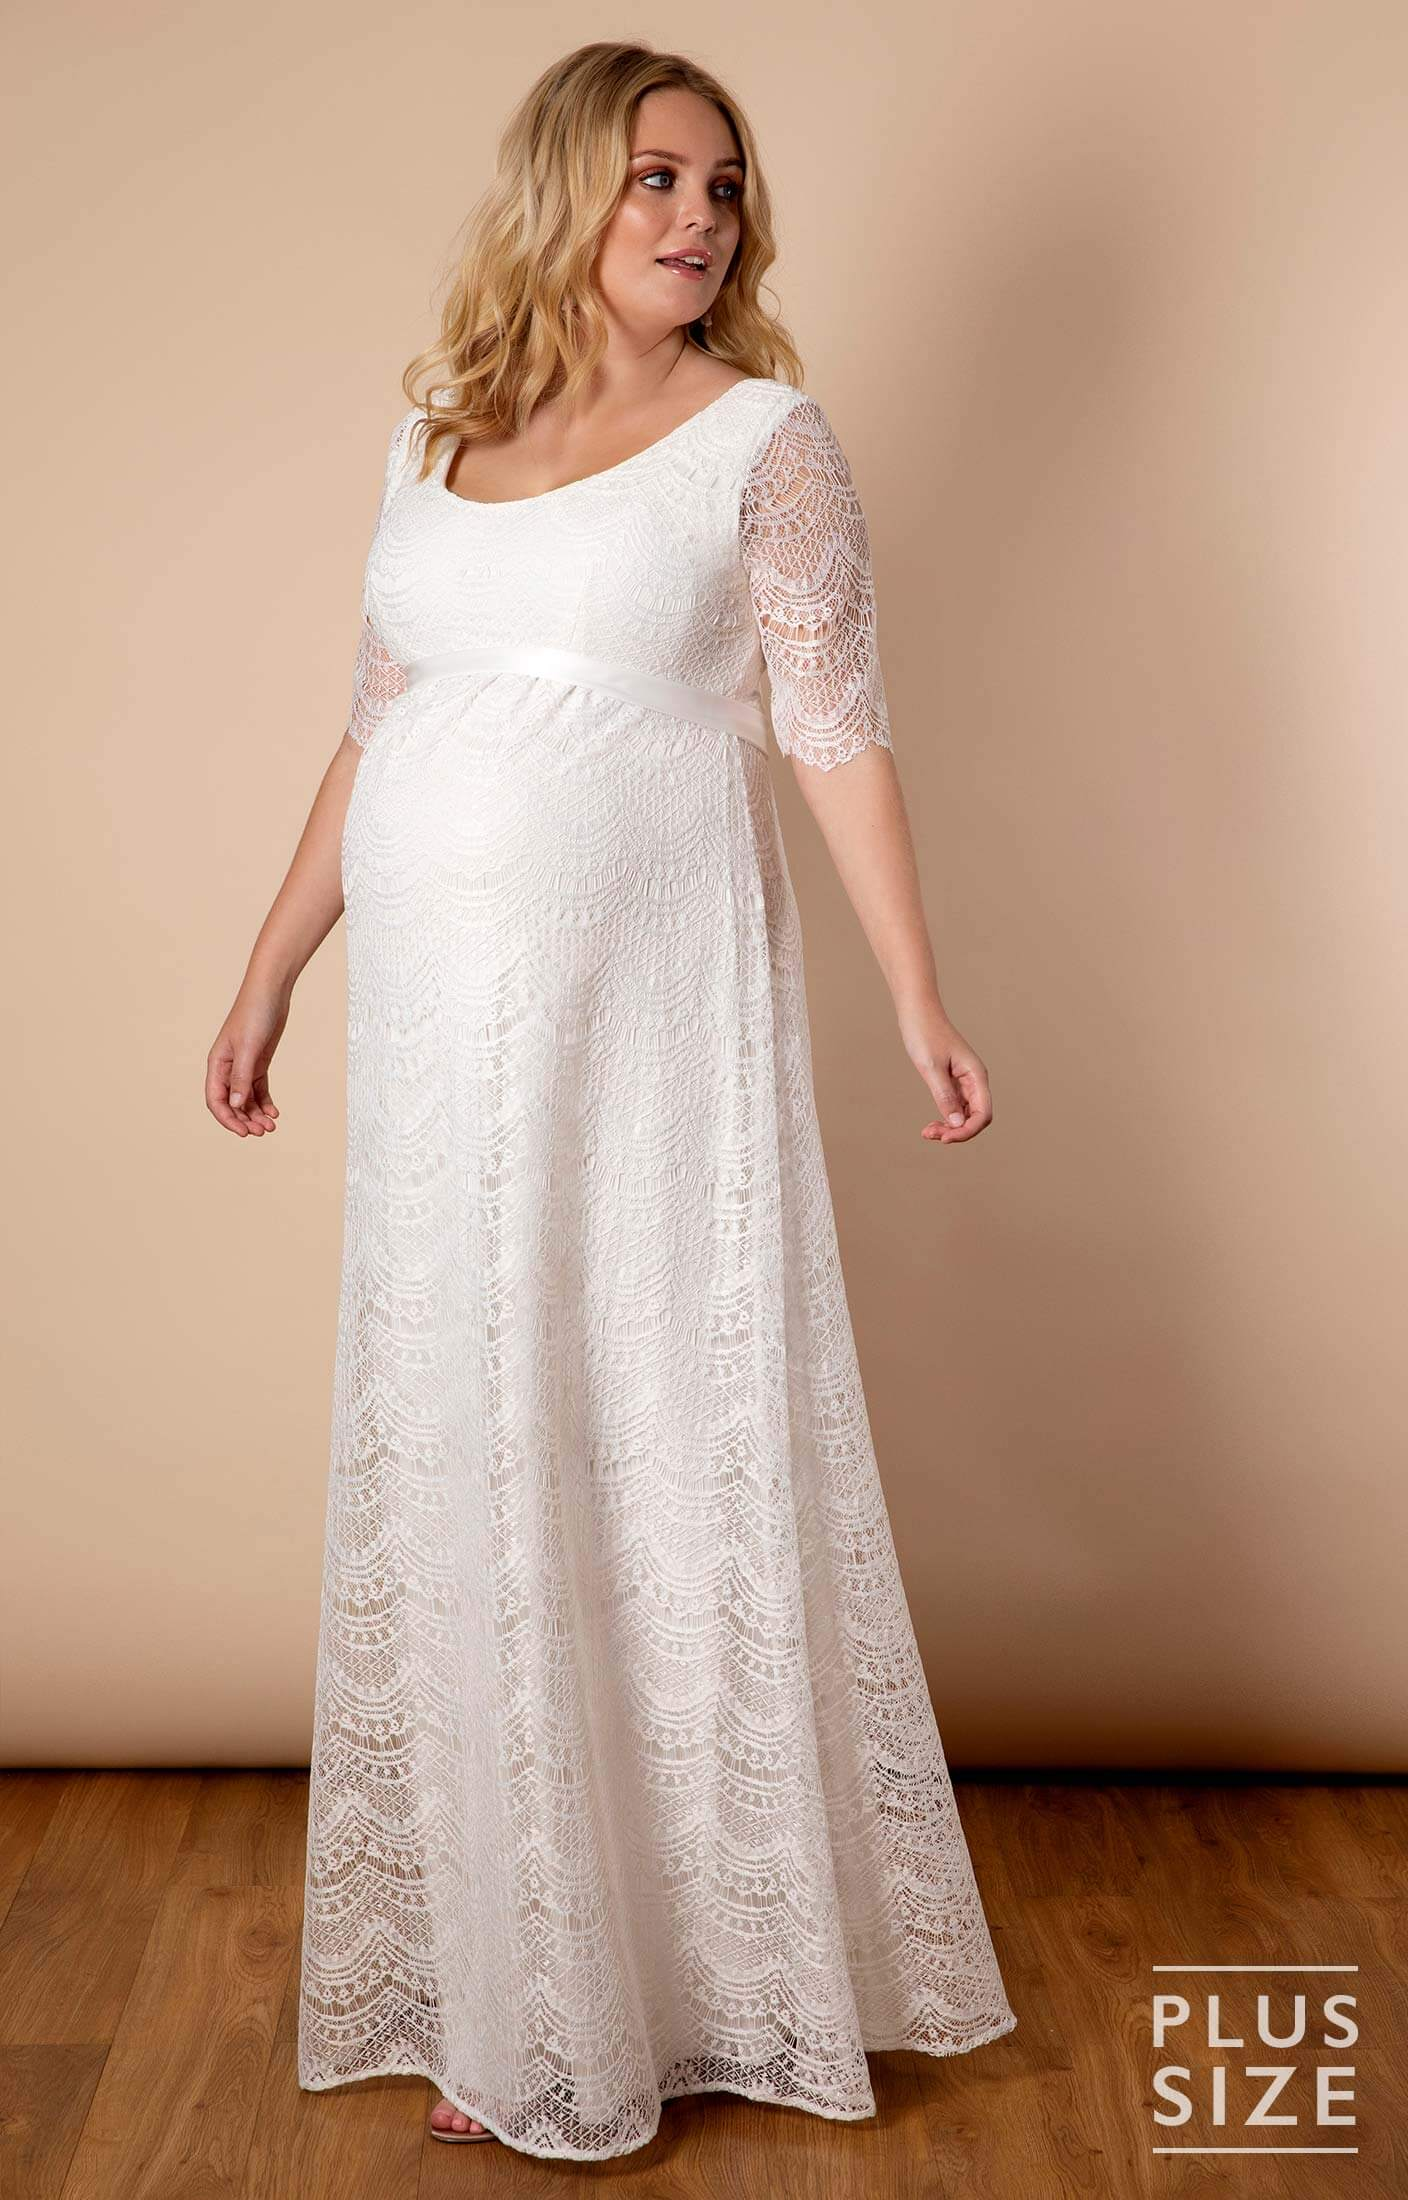 120dd3bbd09ac Verona Plus Size Maternity Wedding Gown Ivory White - Maternity Wedding  Dresses, Evening Wear and Party Clothes by Tiffany Rose NL